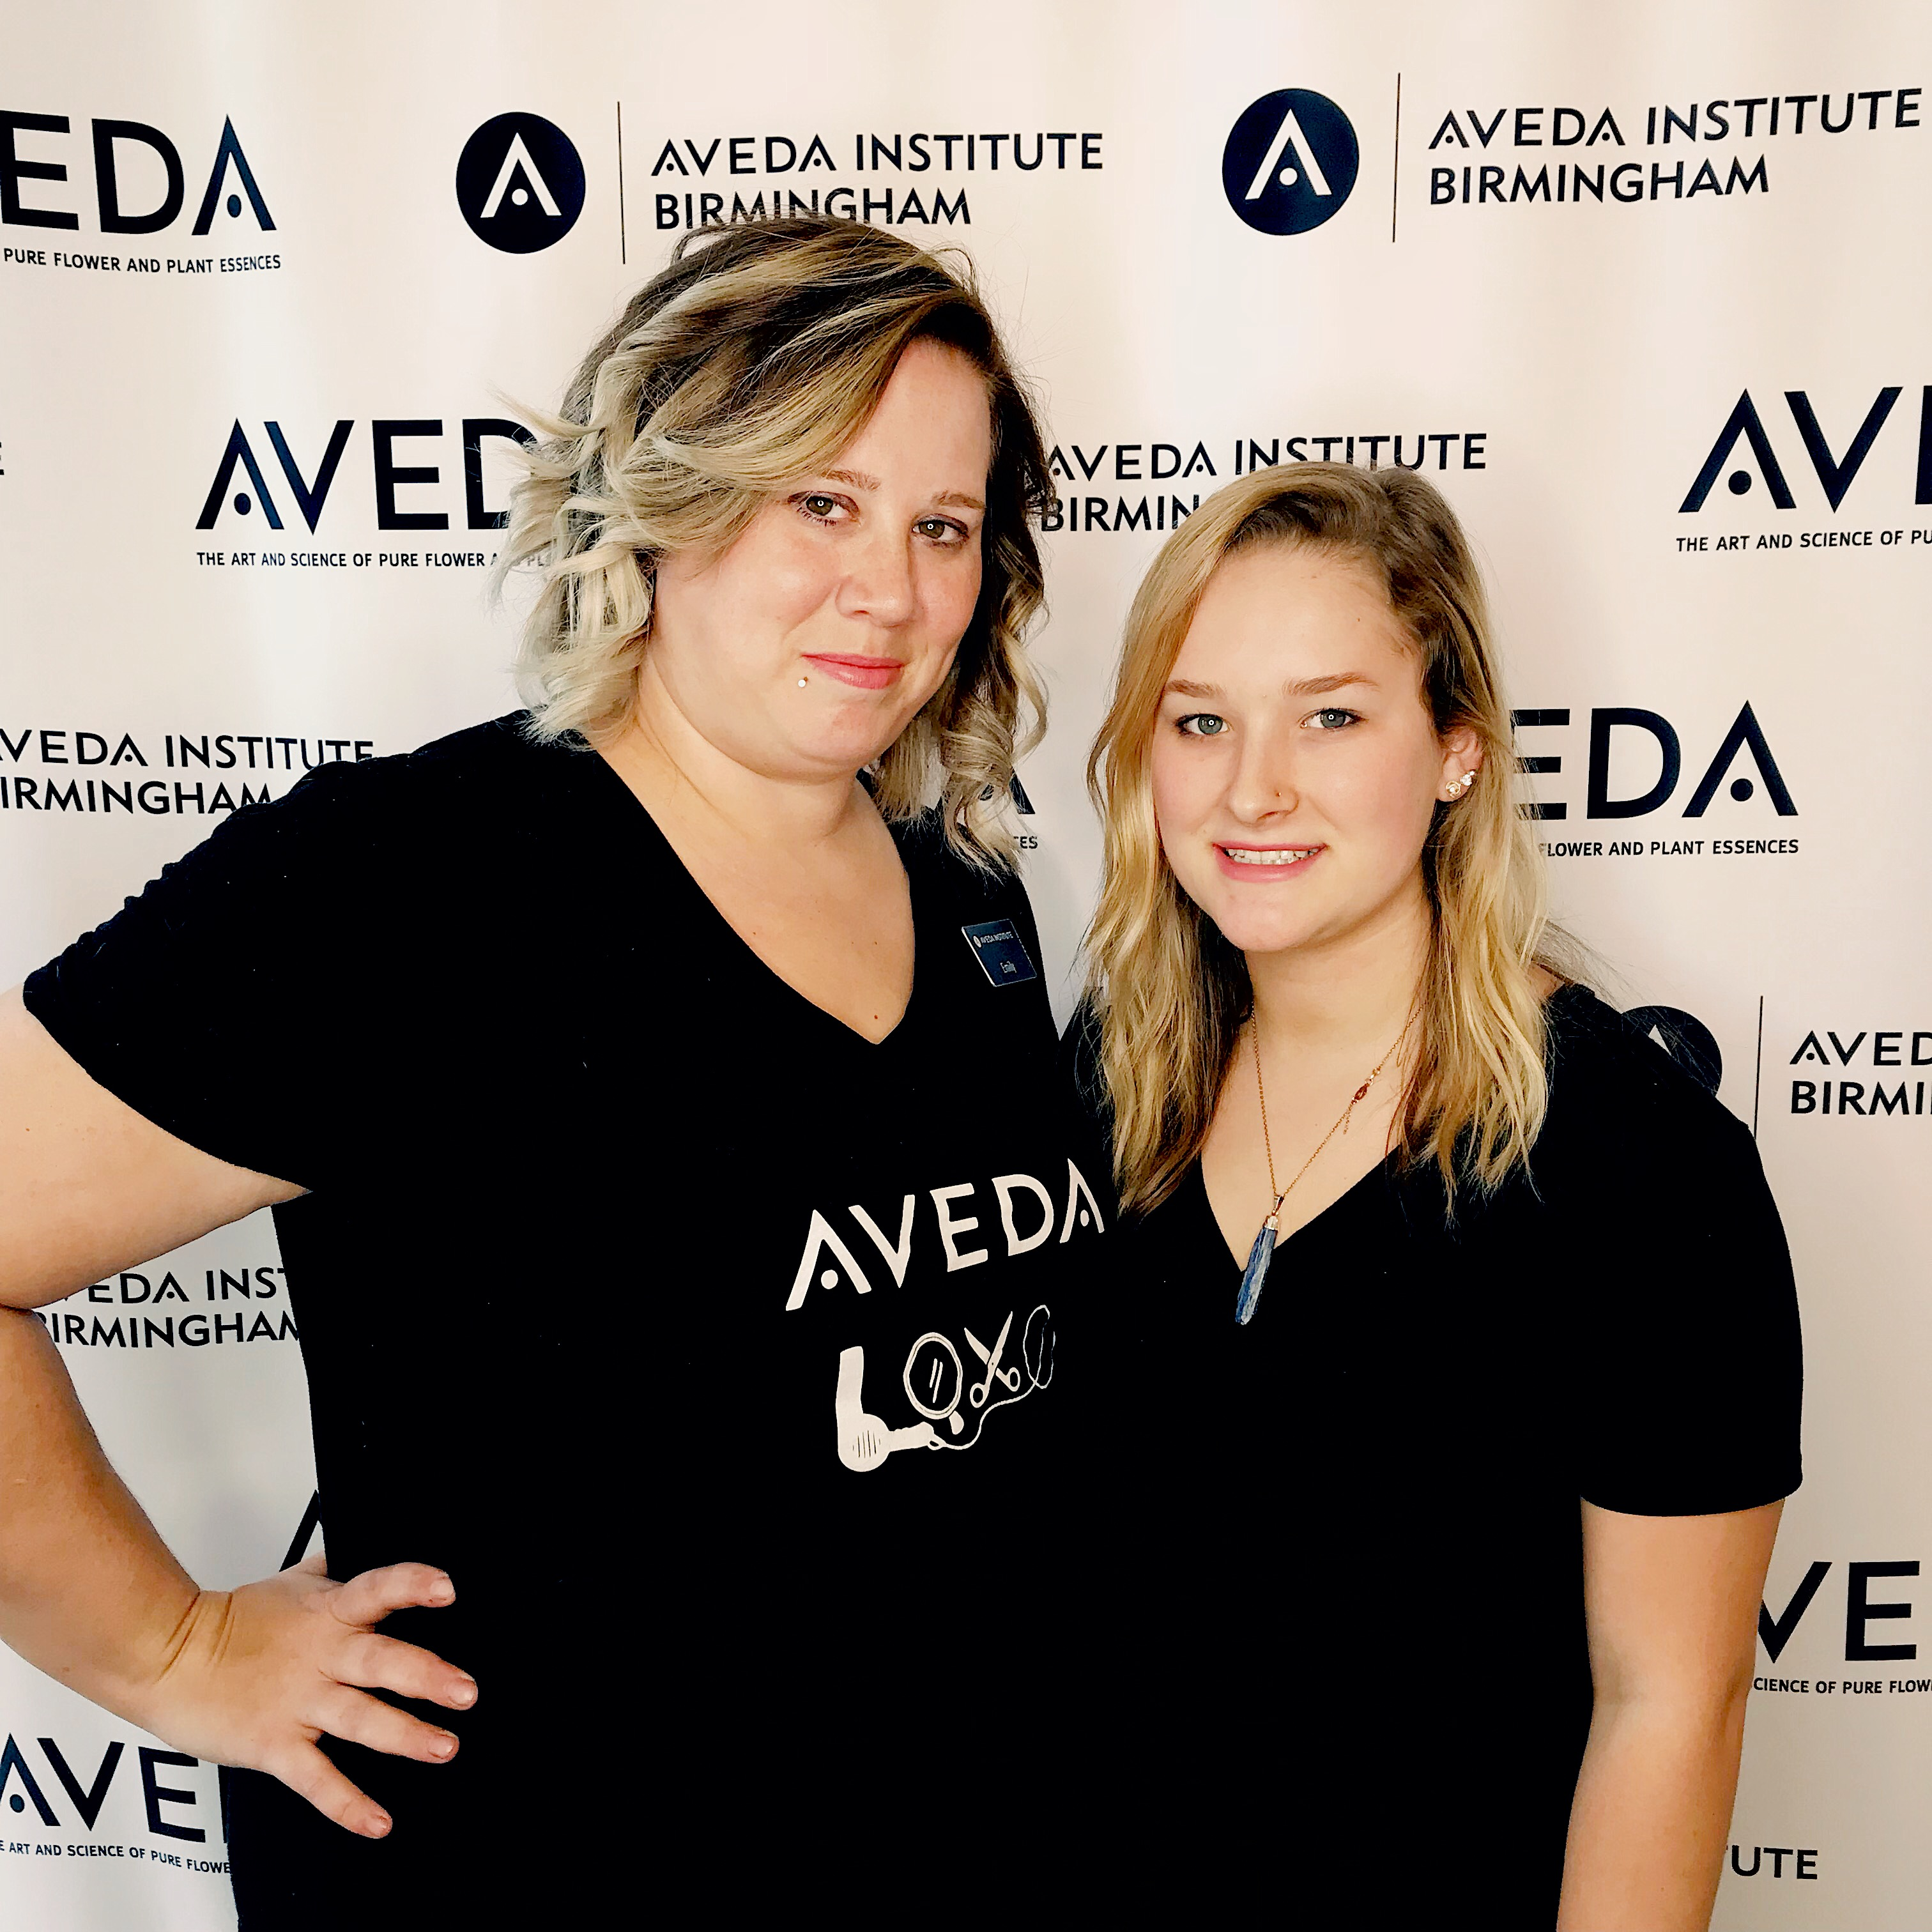 Aveda Arts & Sciences Institute Birmingham Cosmetology students